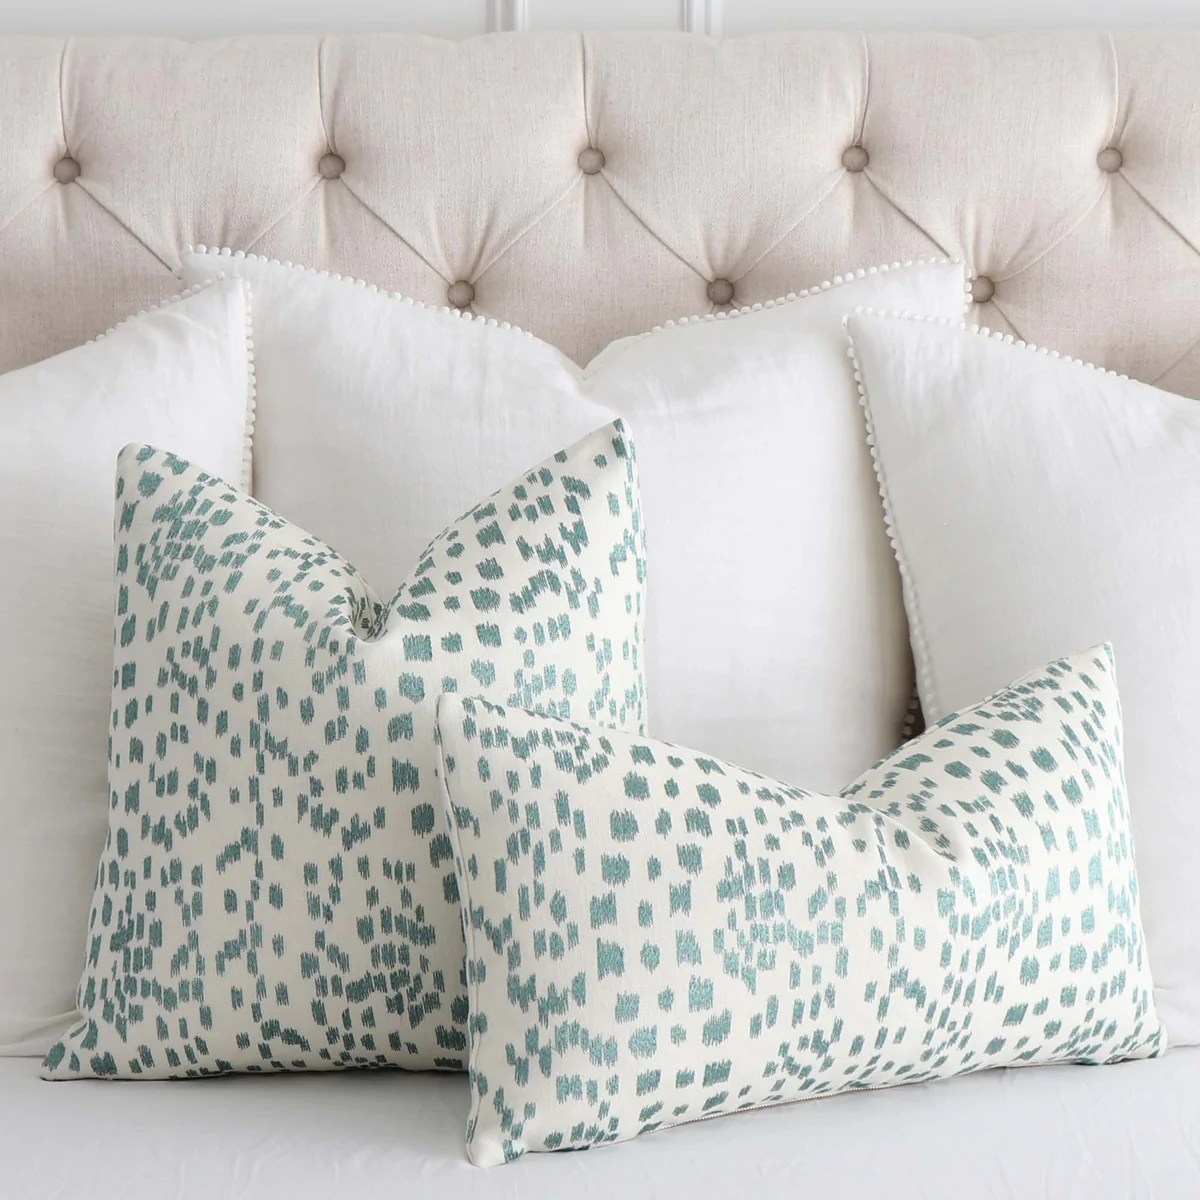 28 x 28 euro throw pillow covers for